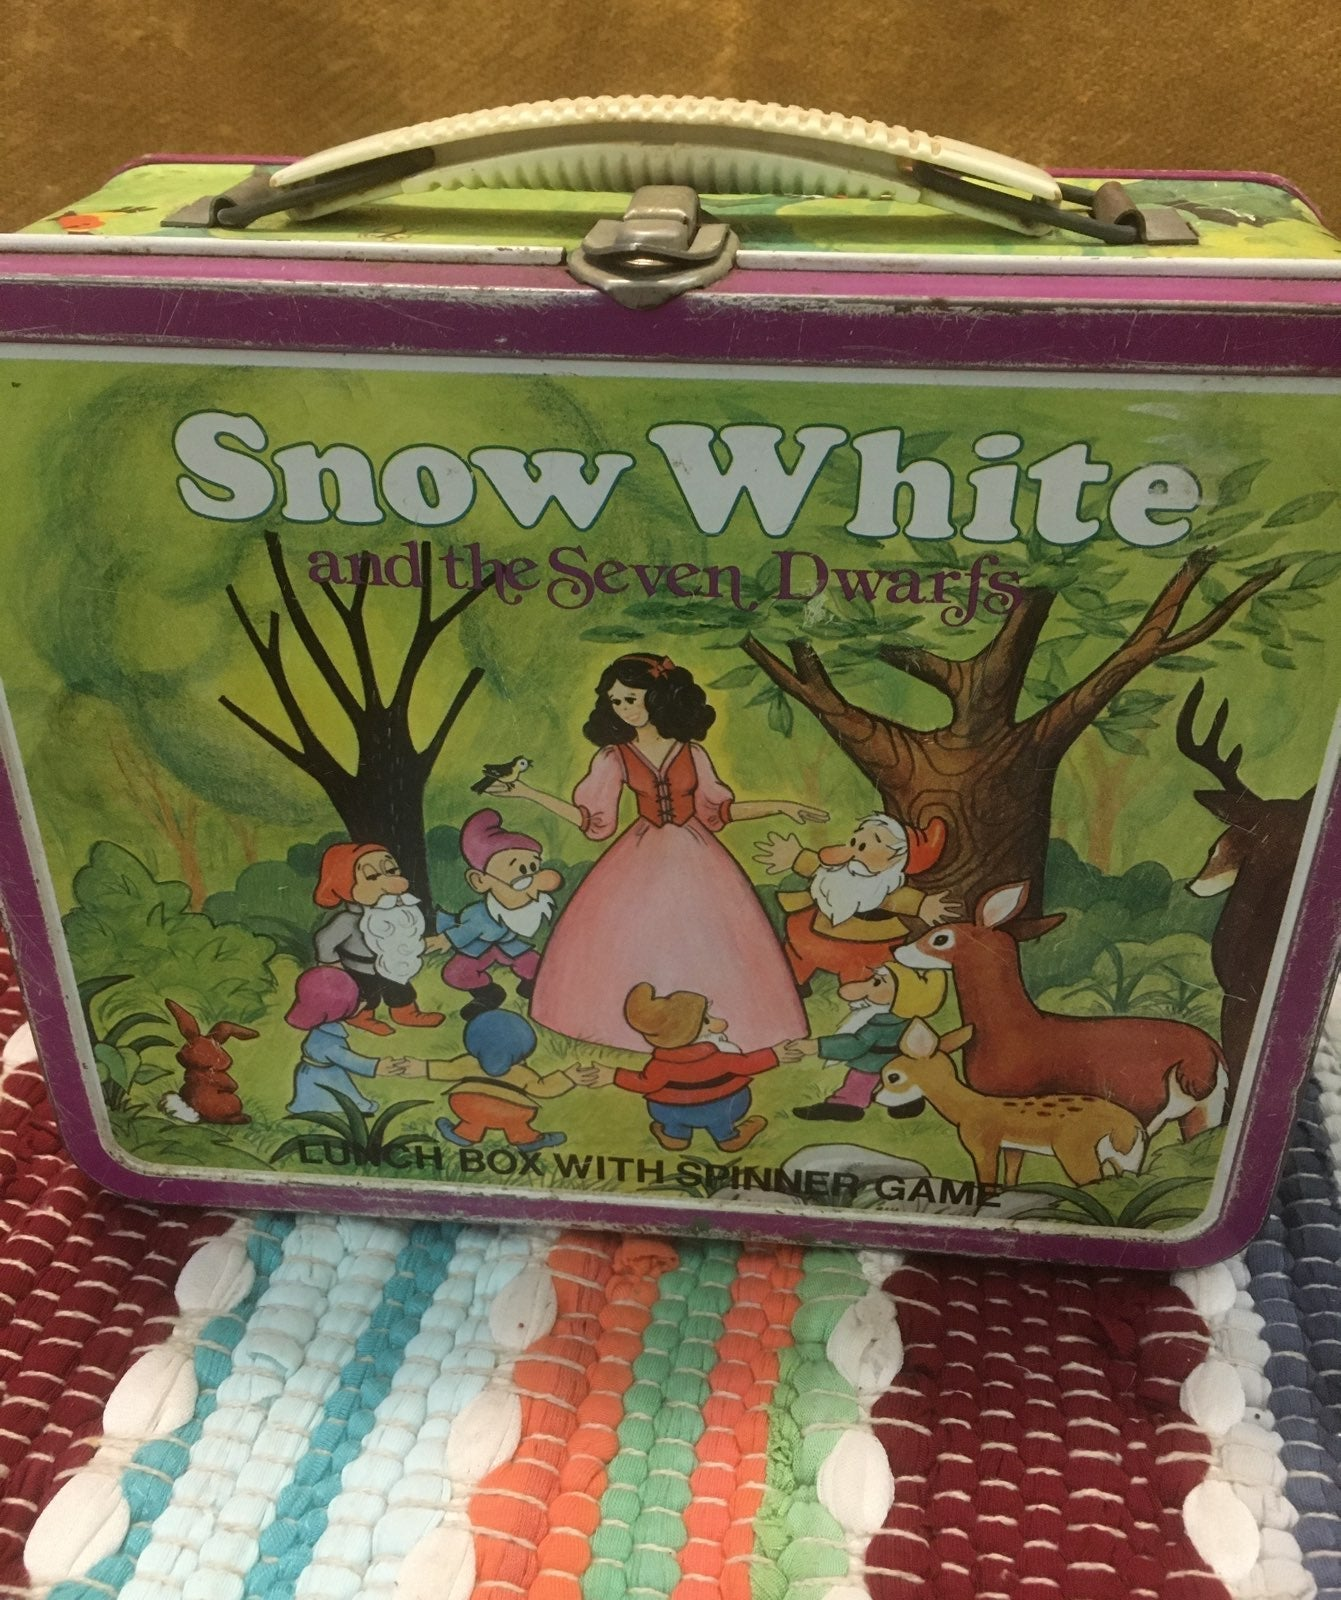 Snow White Metal Lunchbox w Spinner Game